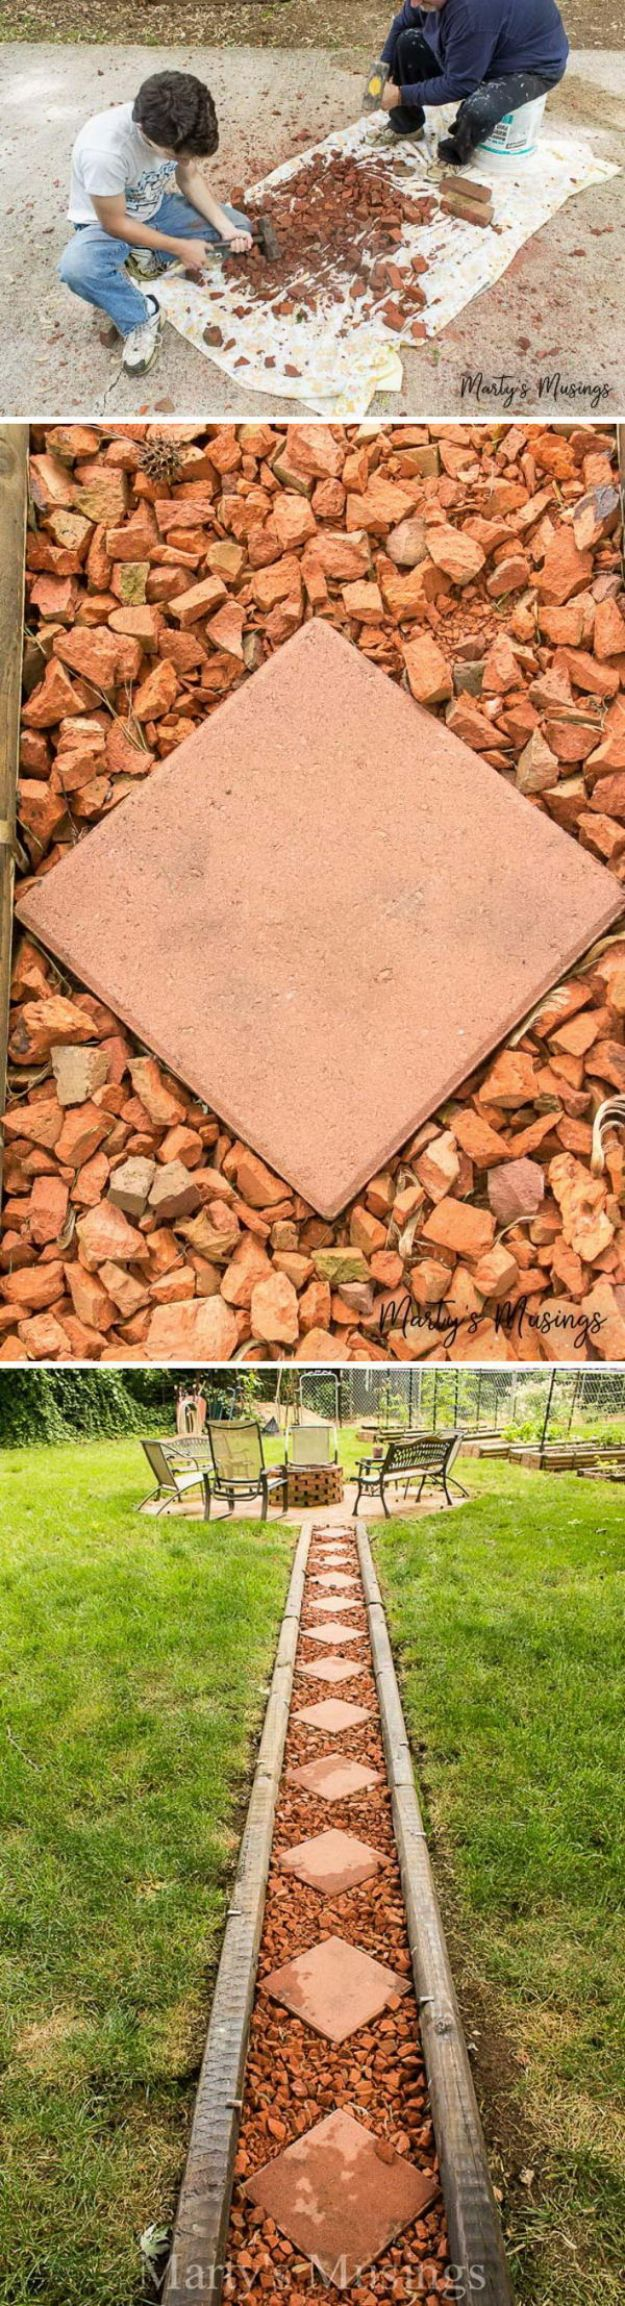 DIY Walkways - Make Your Own Brick Pathway For Under $50 - Do It Yourself Walkway Ideas for Paths to The Front Door and Backyard - Cheap and Easy Pavers and Concrete Path and Stepping Stones - Wood and Edging, Lights, Backyard and Patio Walks With Gravel, Sand, Dirt and Brick #diyideas